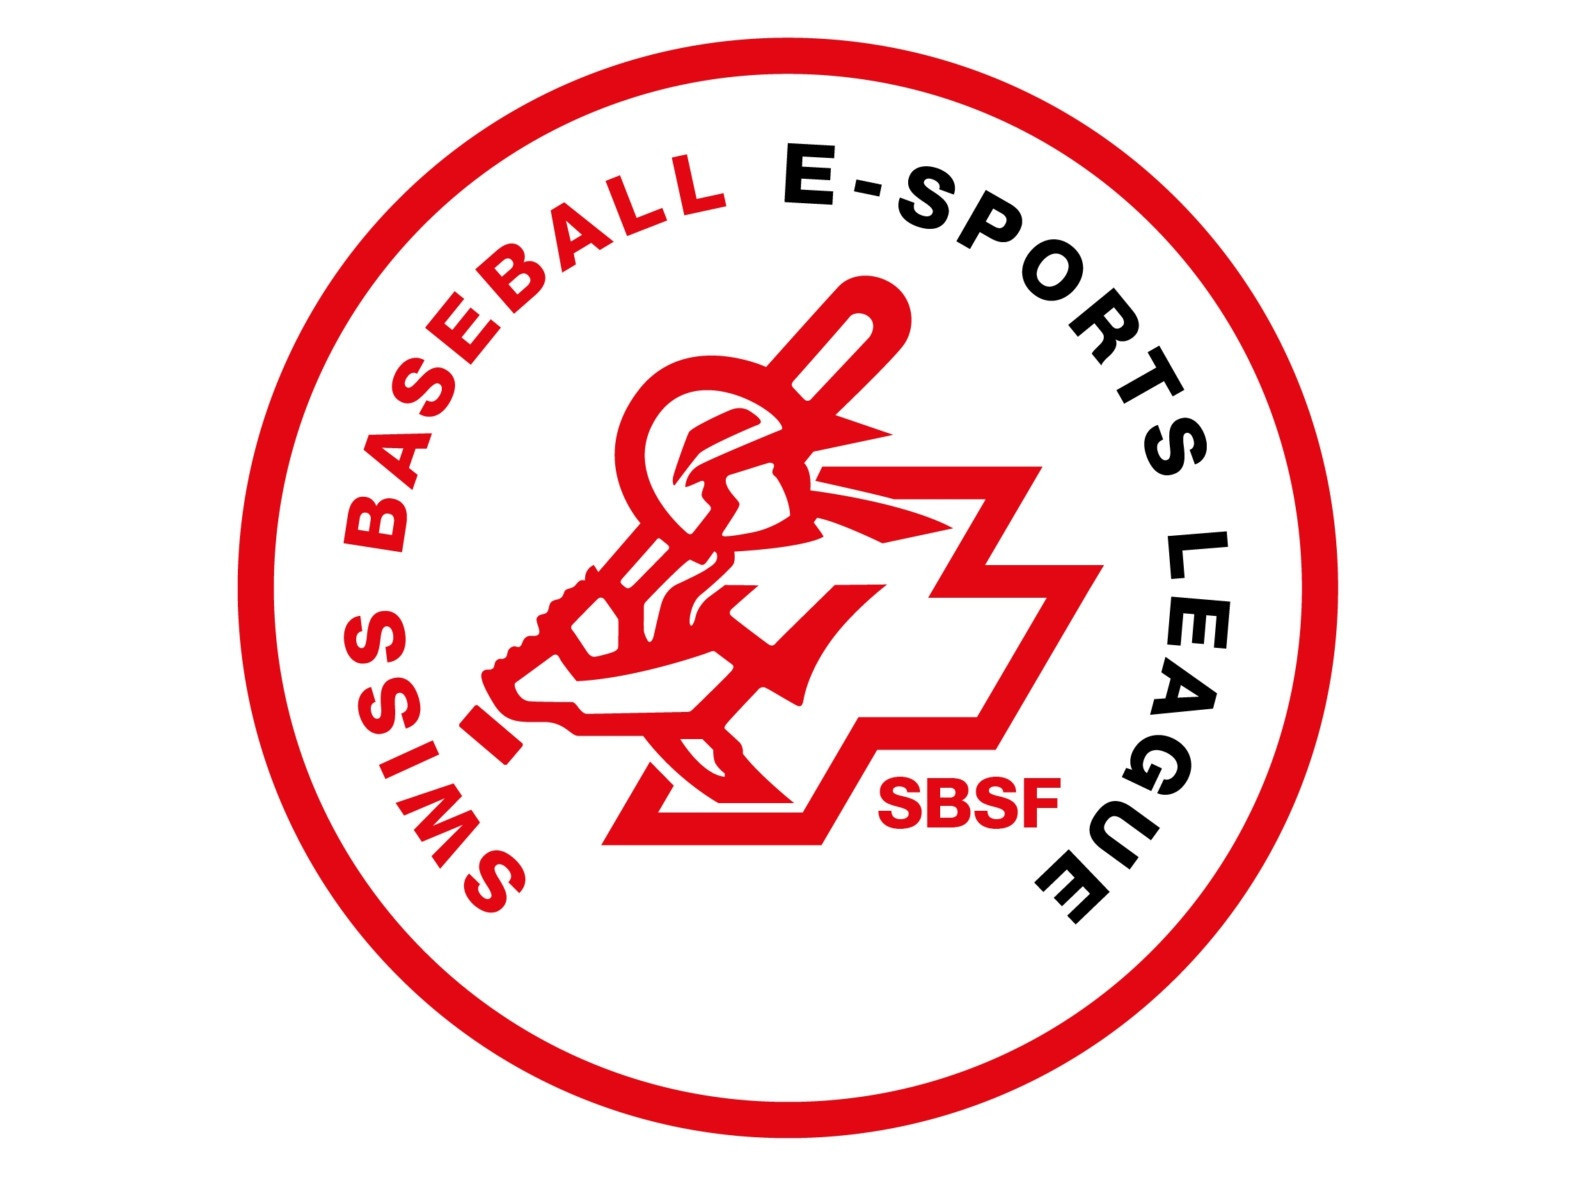 Switzerland to launch Europe's first esports baseball league since WBSC approval